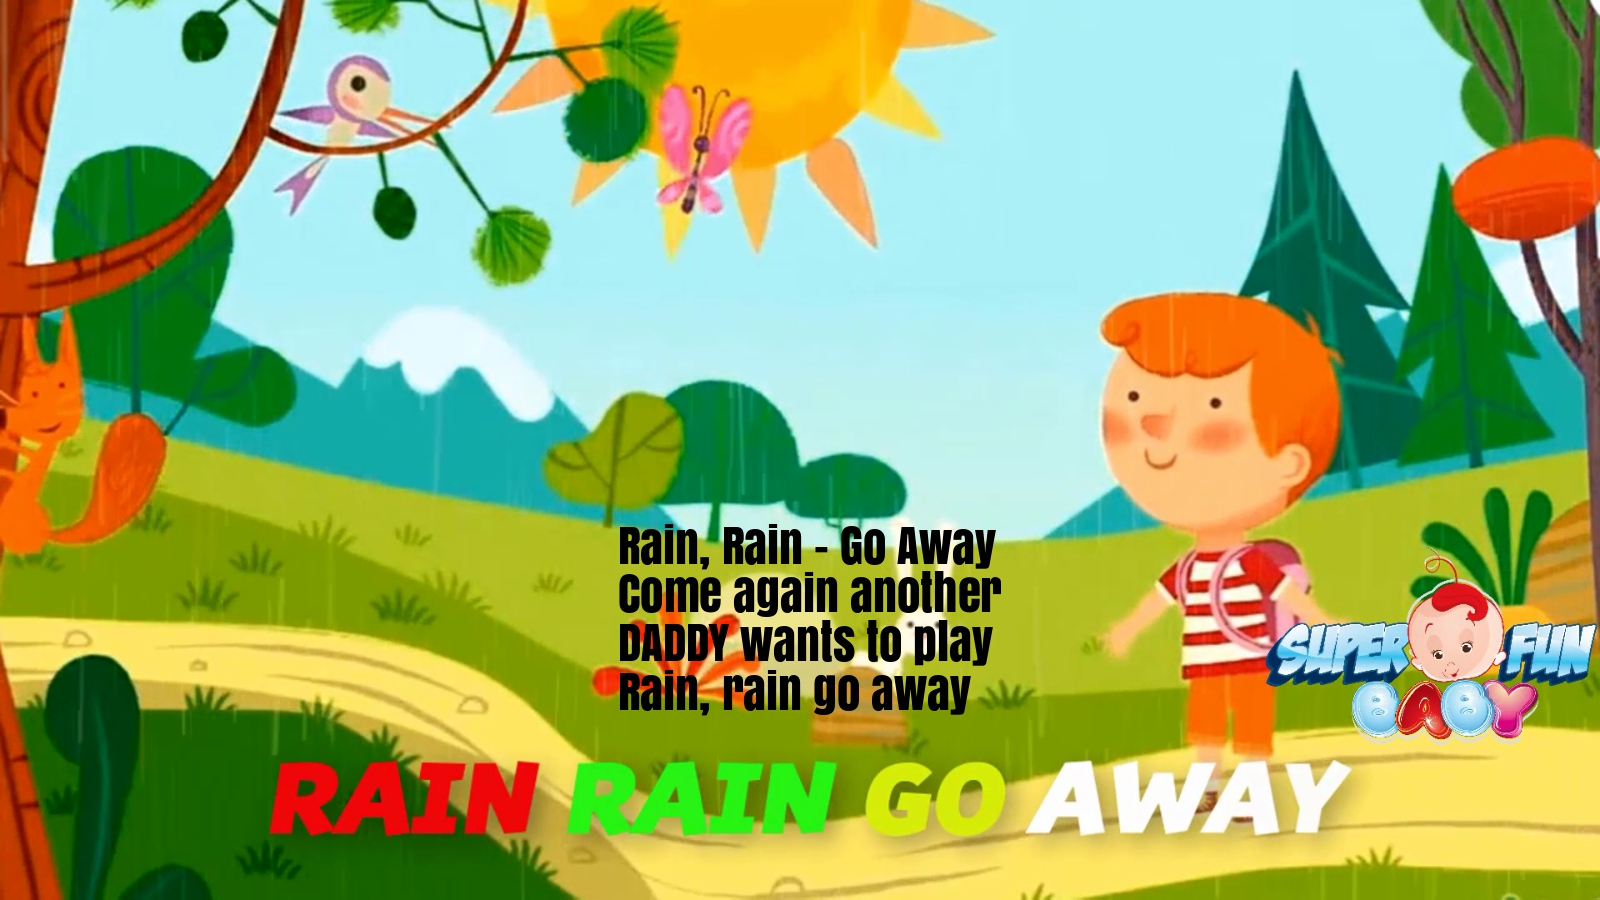 Rain Rain Go Away Lyrics Super Fun Baby Nursery Rhymes And